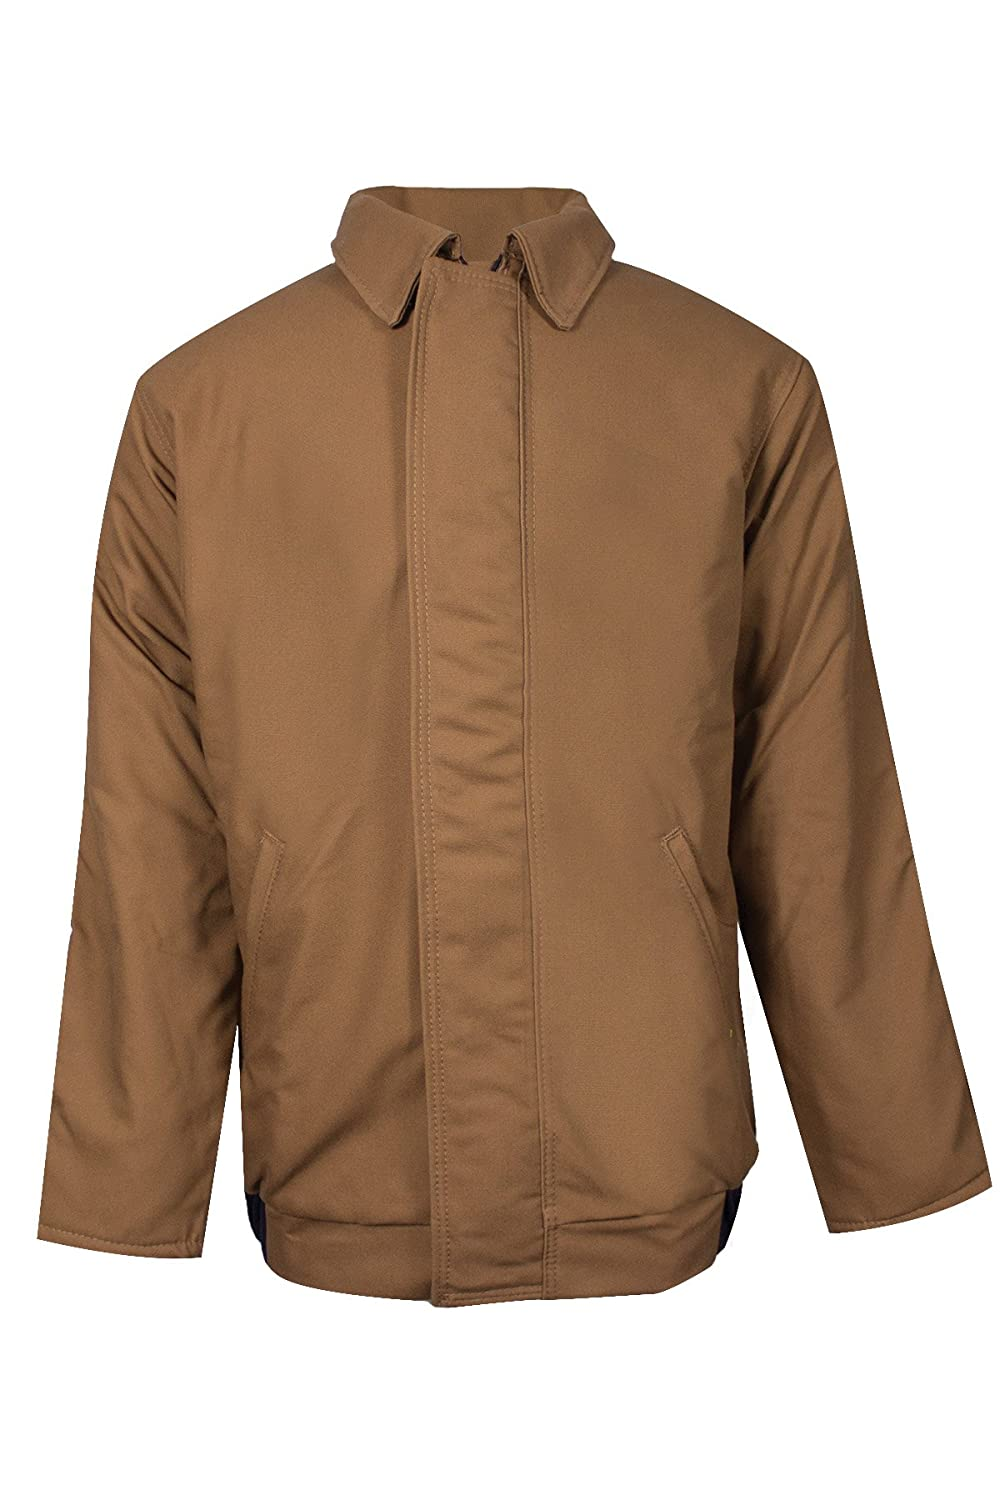 National Safety Apparel C34UMMQ3XRG Explorer Series Bomber Jacket, Modaquilt Lined 88% Cotton/12% Nylon Duck FR, 3X-Large, Brown